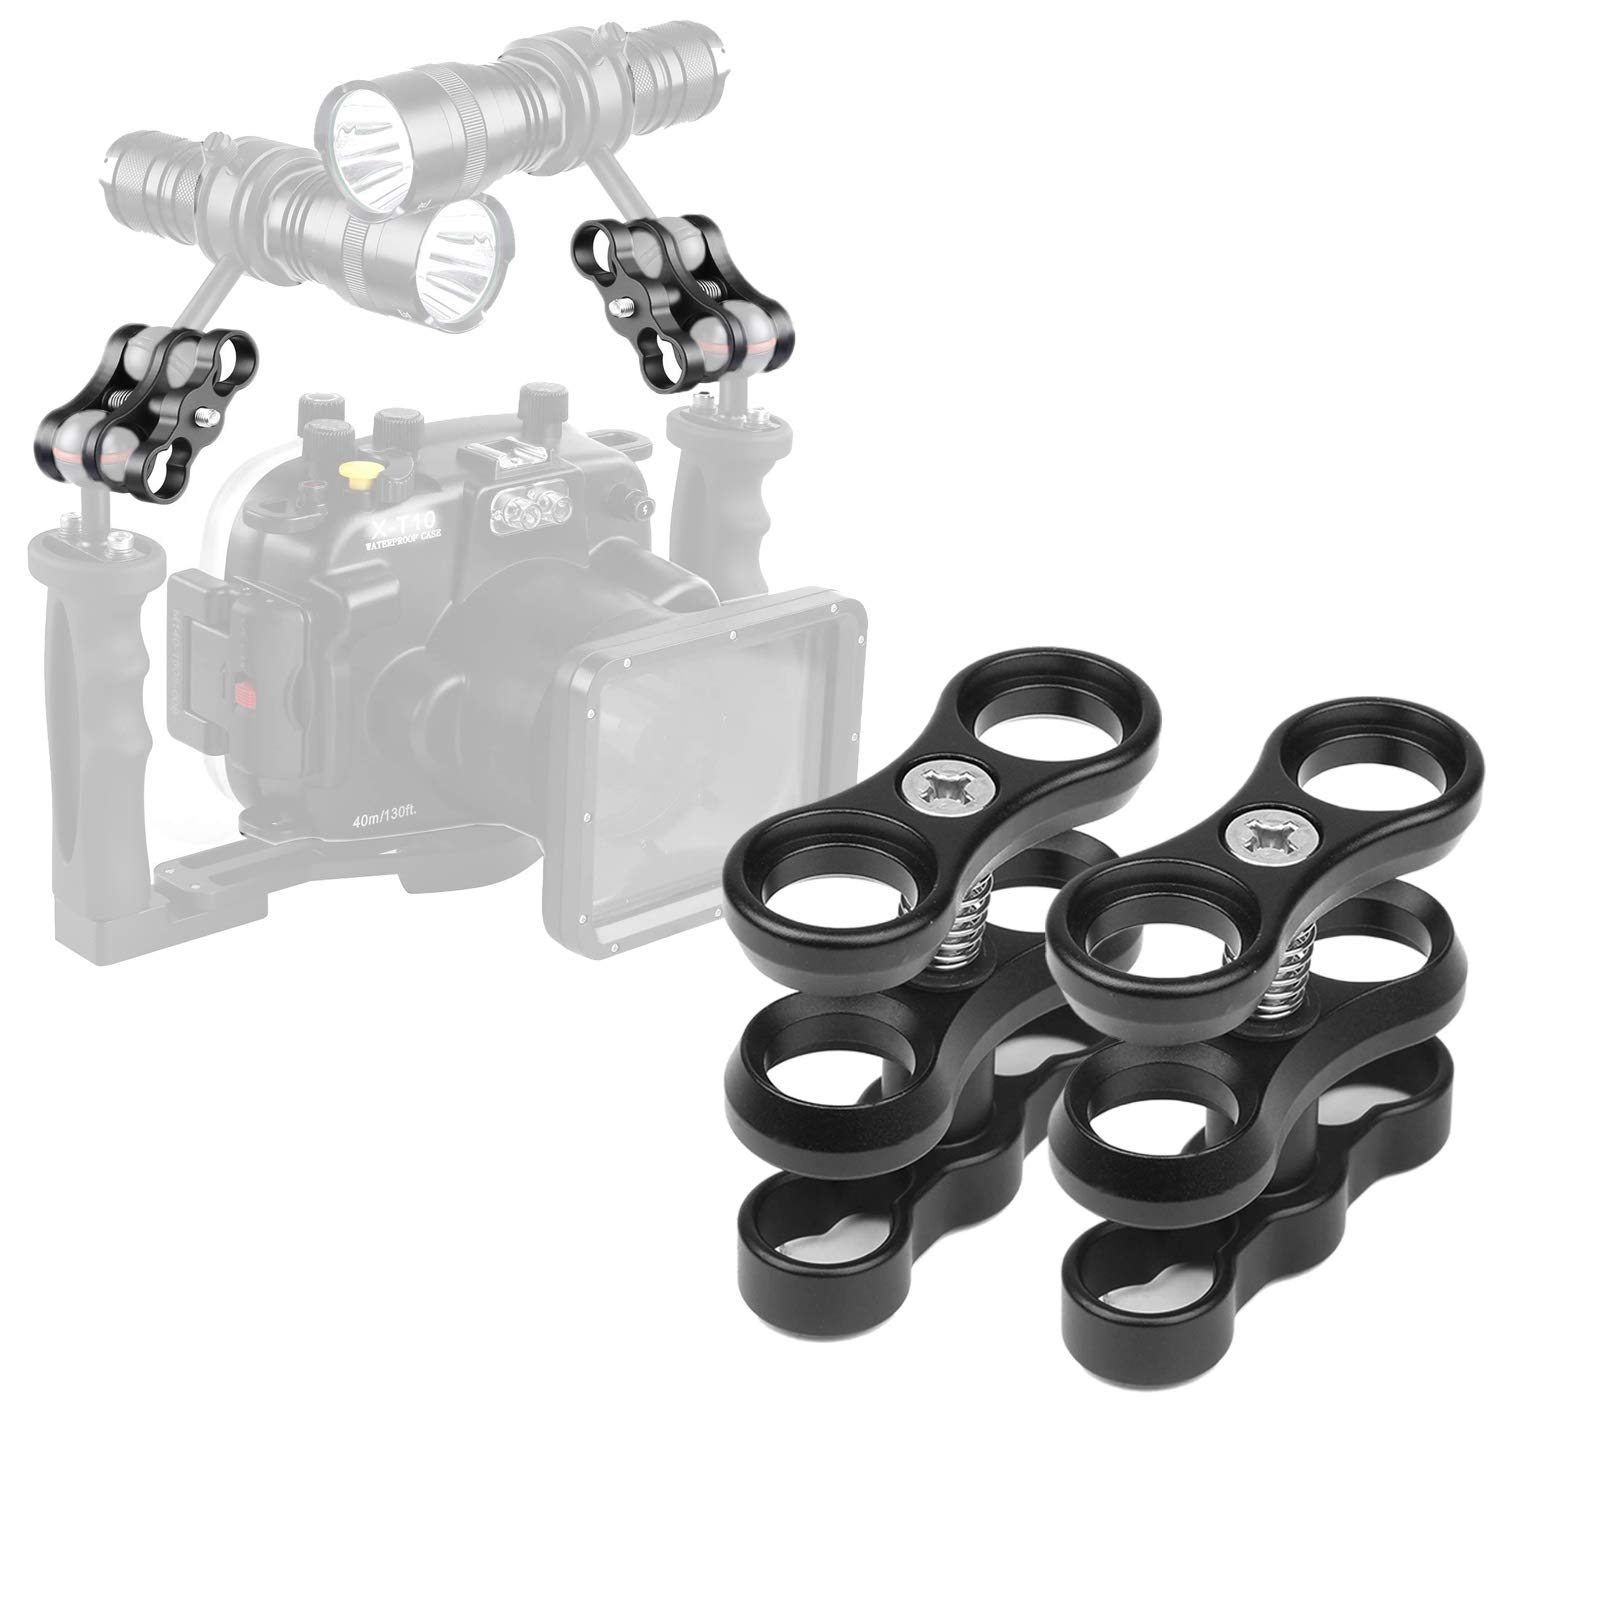 WLPREOE 2pcs 1'' Aluminum Ball Arms Clamp Mount for Underwater Diving Light Tray Handle System,CamDive, Meikon, Ikelite, TLC, Ultralight, Nauticam and Others by WLPREOE